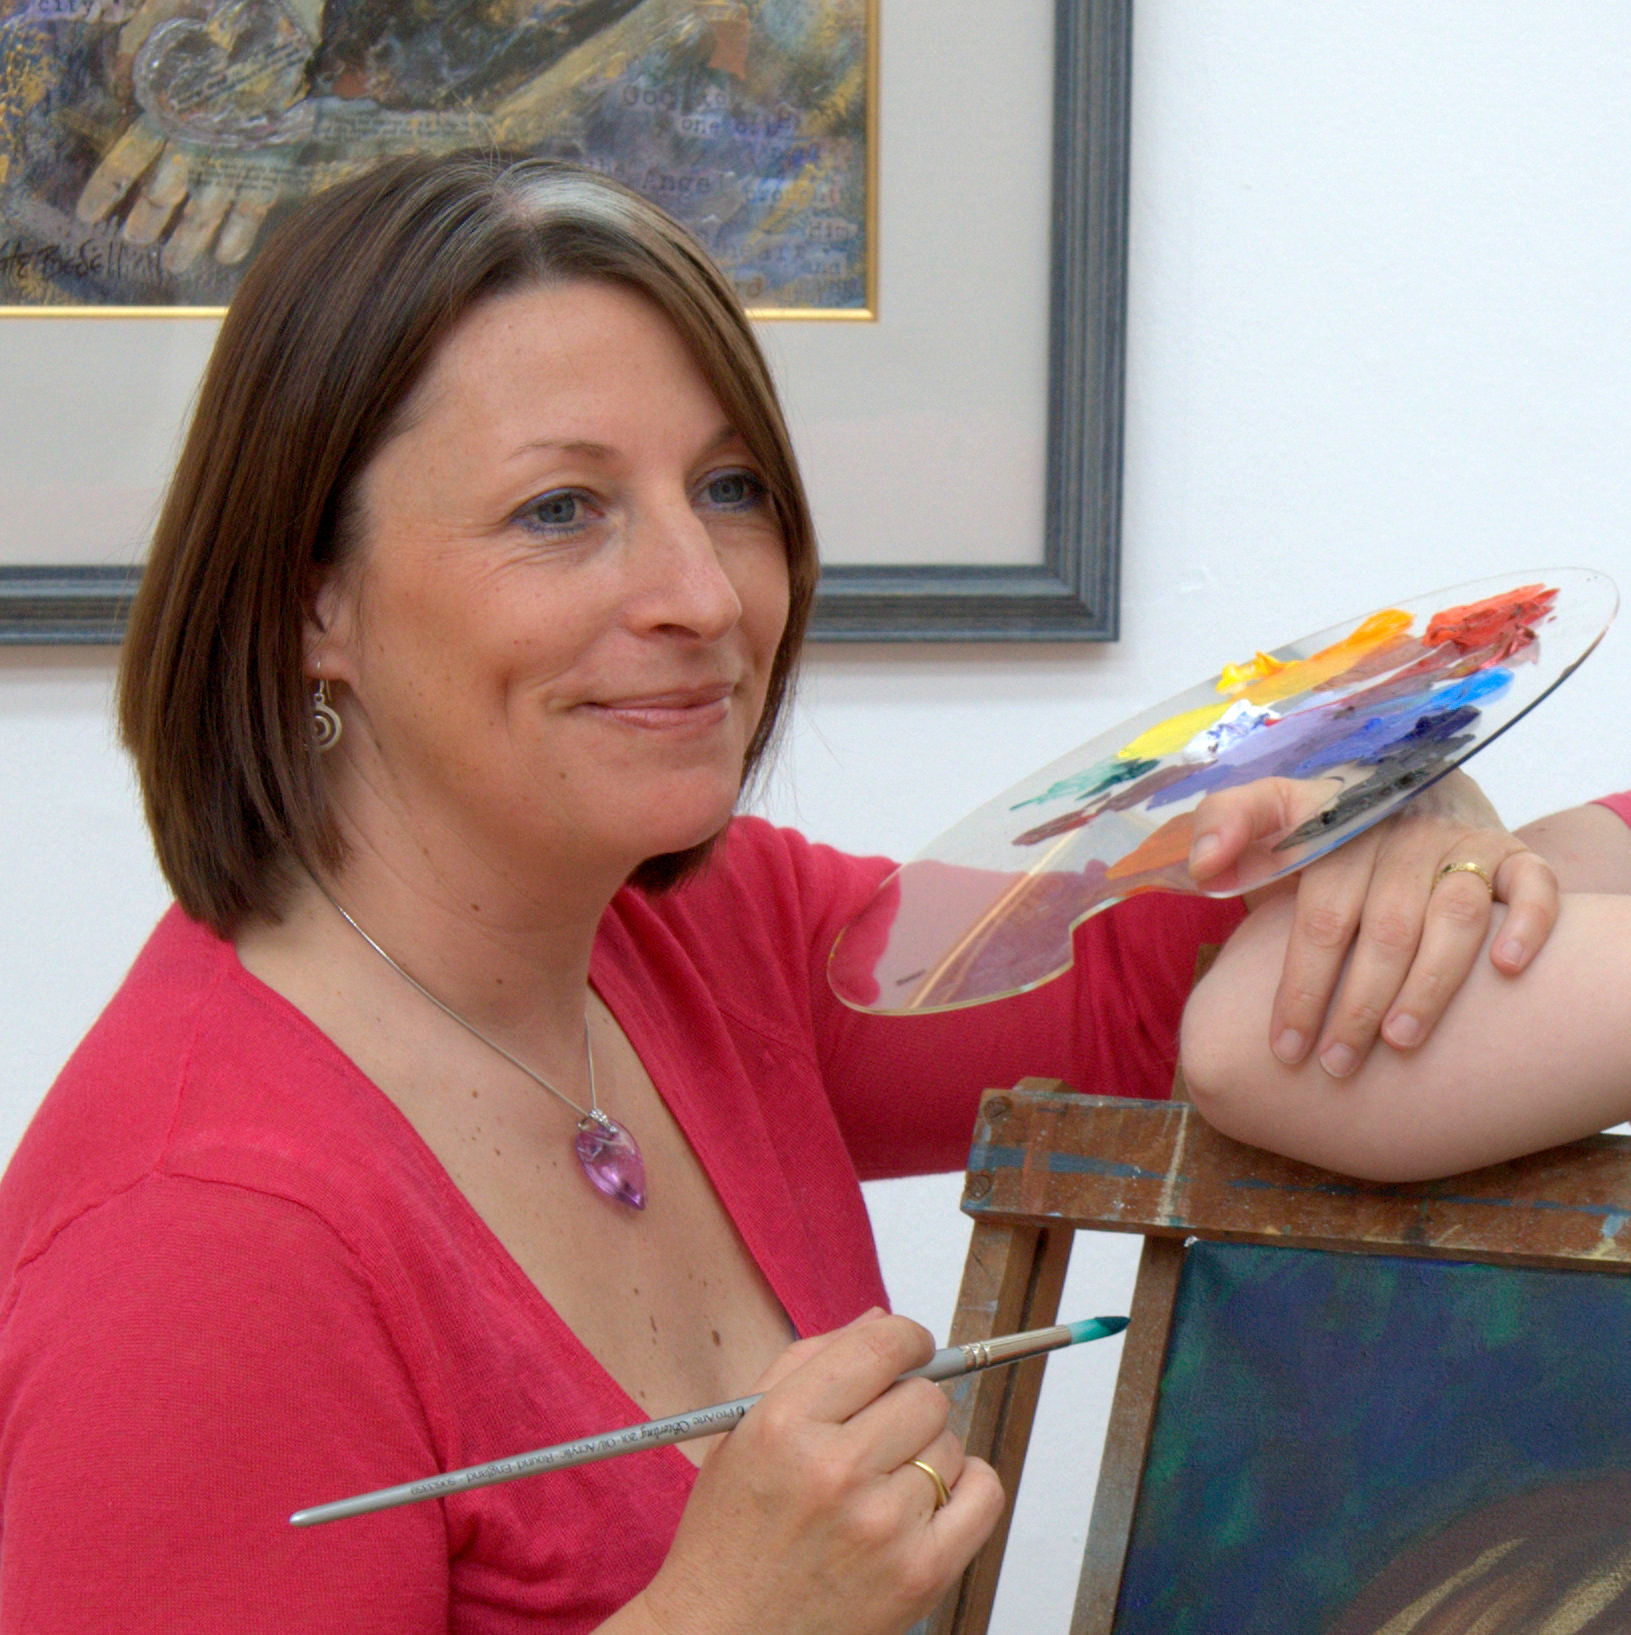 Kate Bedell - Informal photo shoot at the Dublin Painting and Sketching Club Annual Show